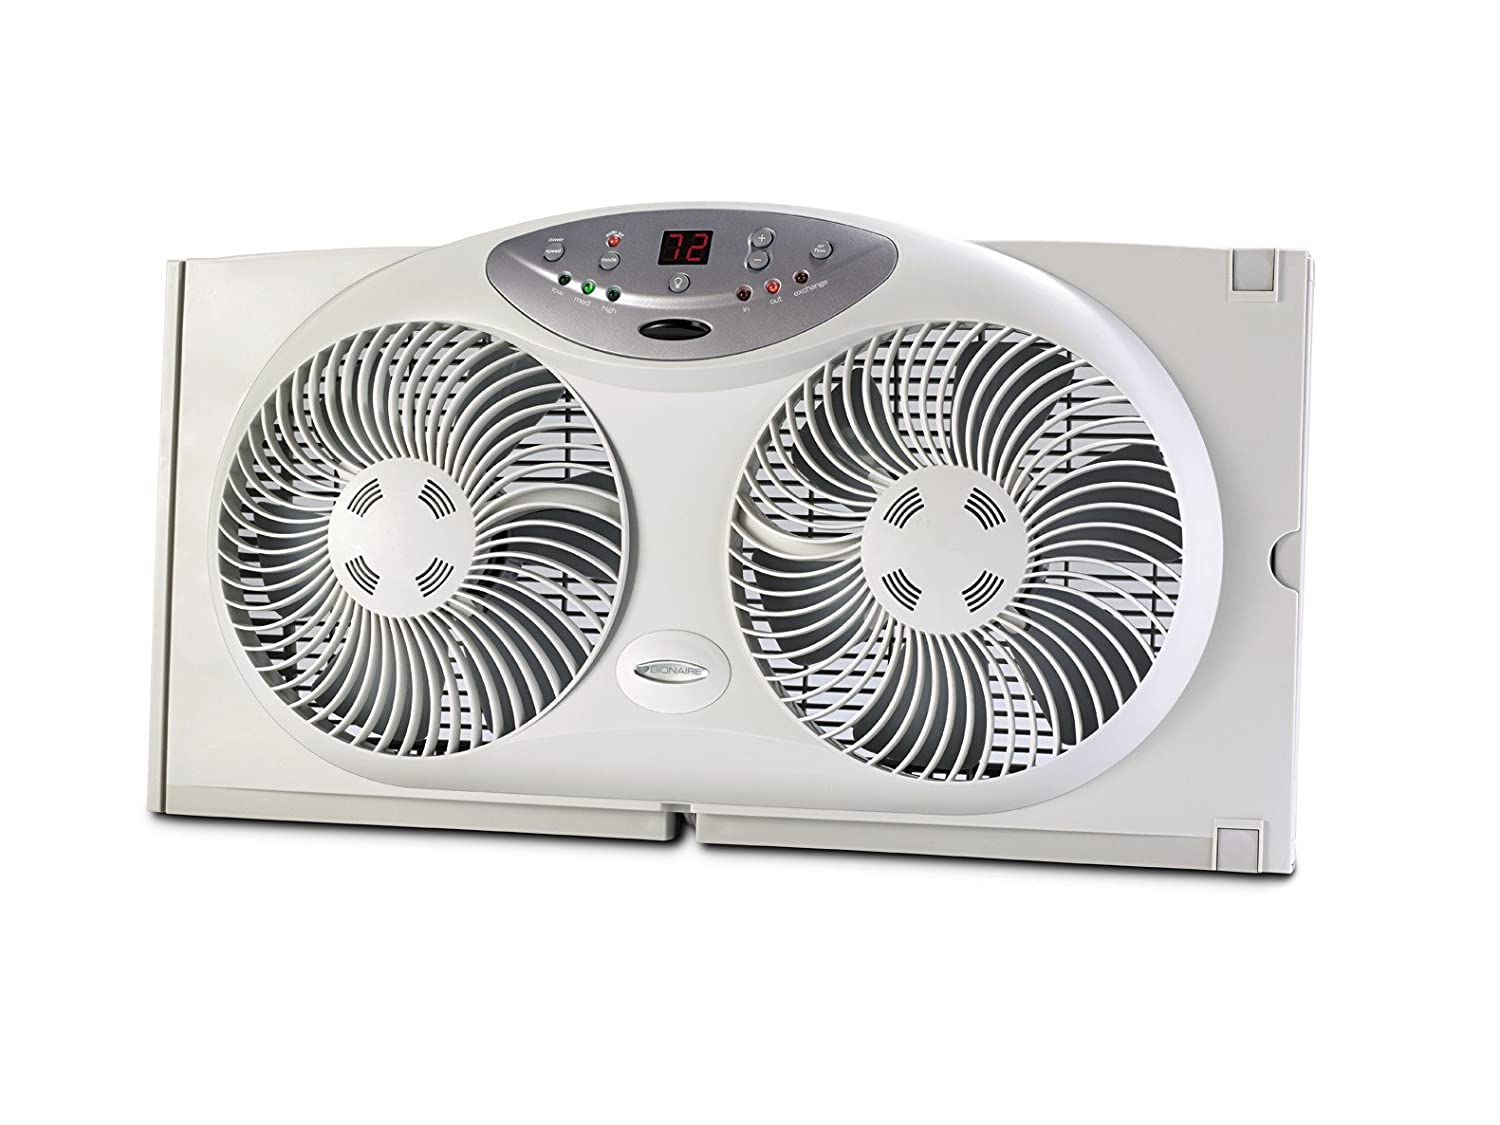 Top 7 Best Window Fan For Cooling (2020 Reviews & Buying Guide) 2